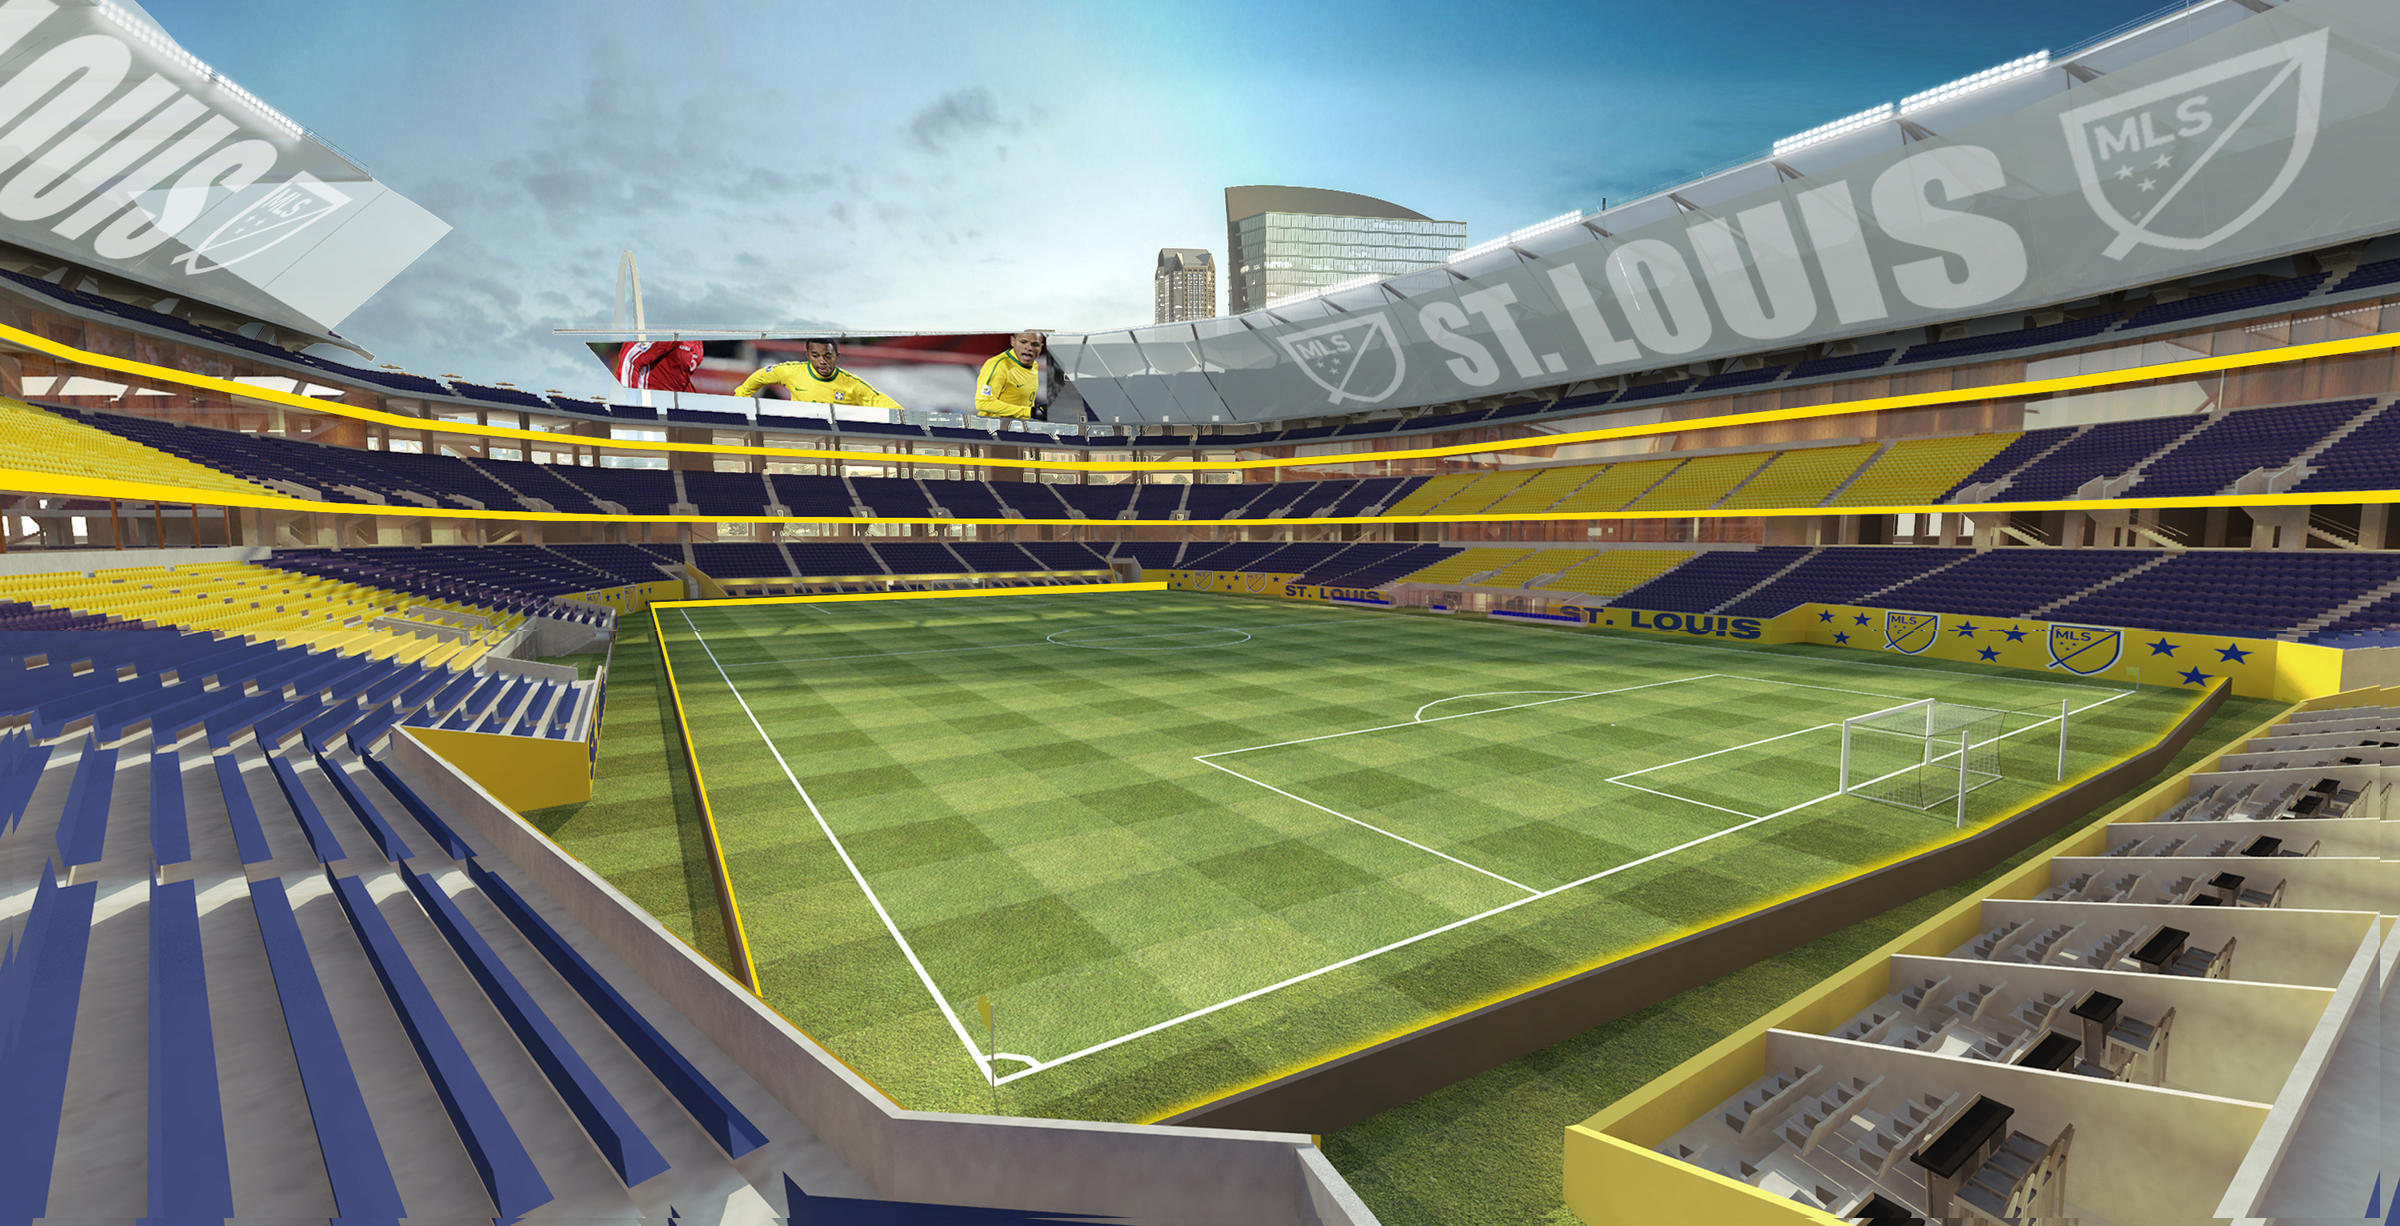 Defeat of ballot measure likely ends MLS effort in St. Louis